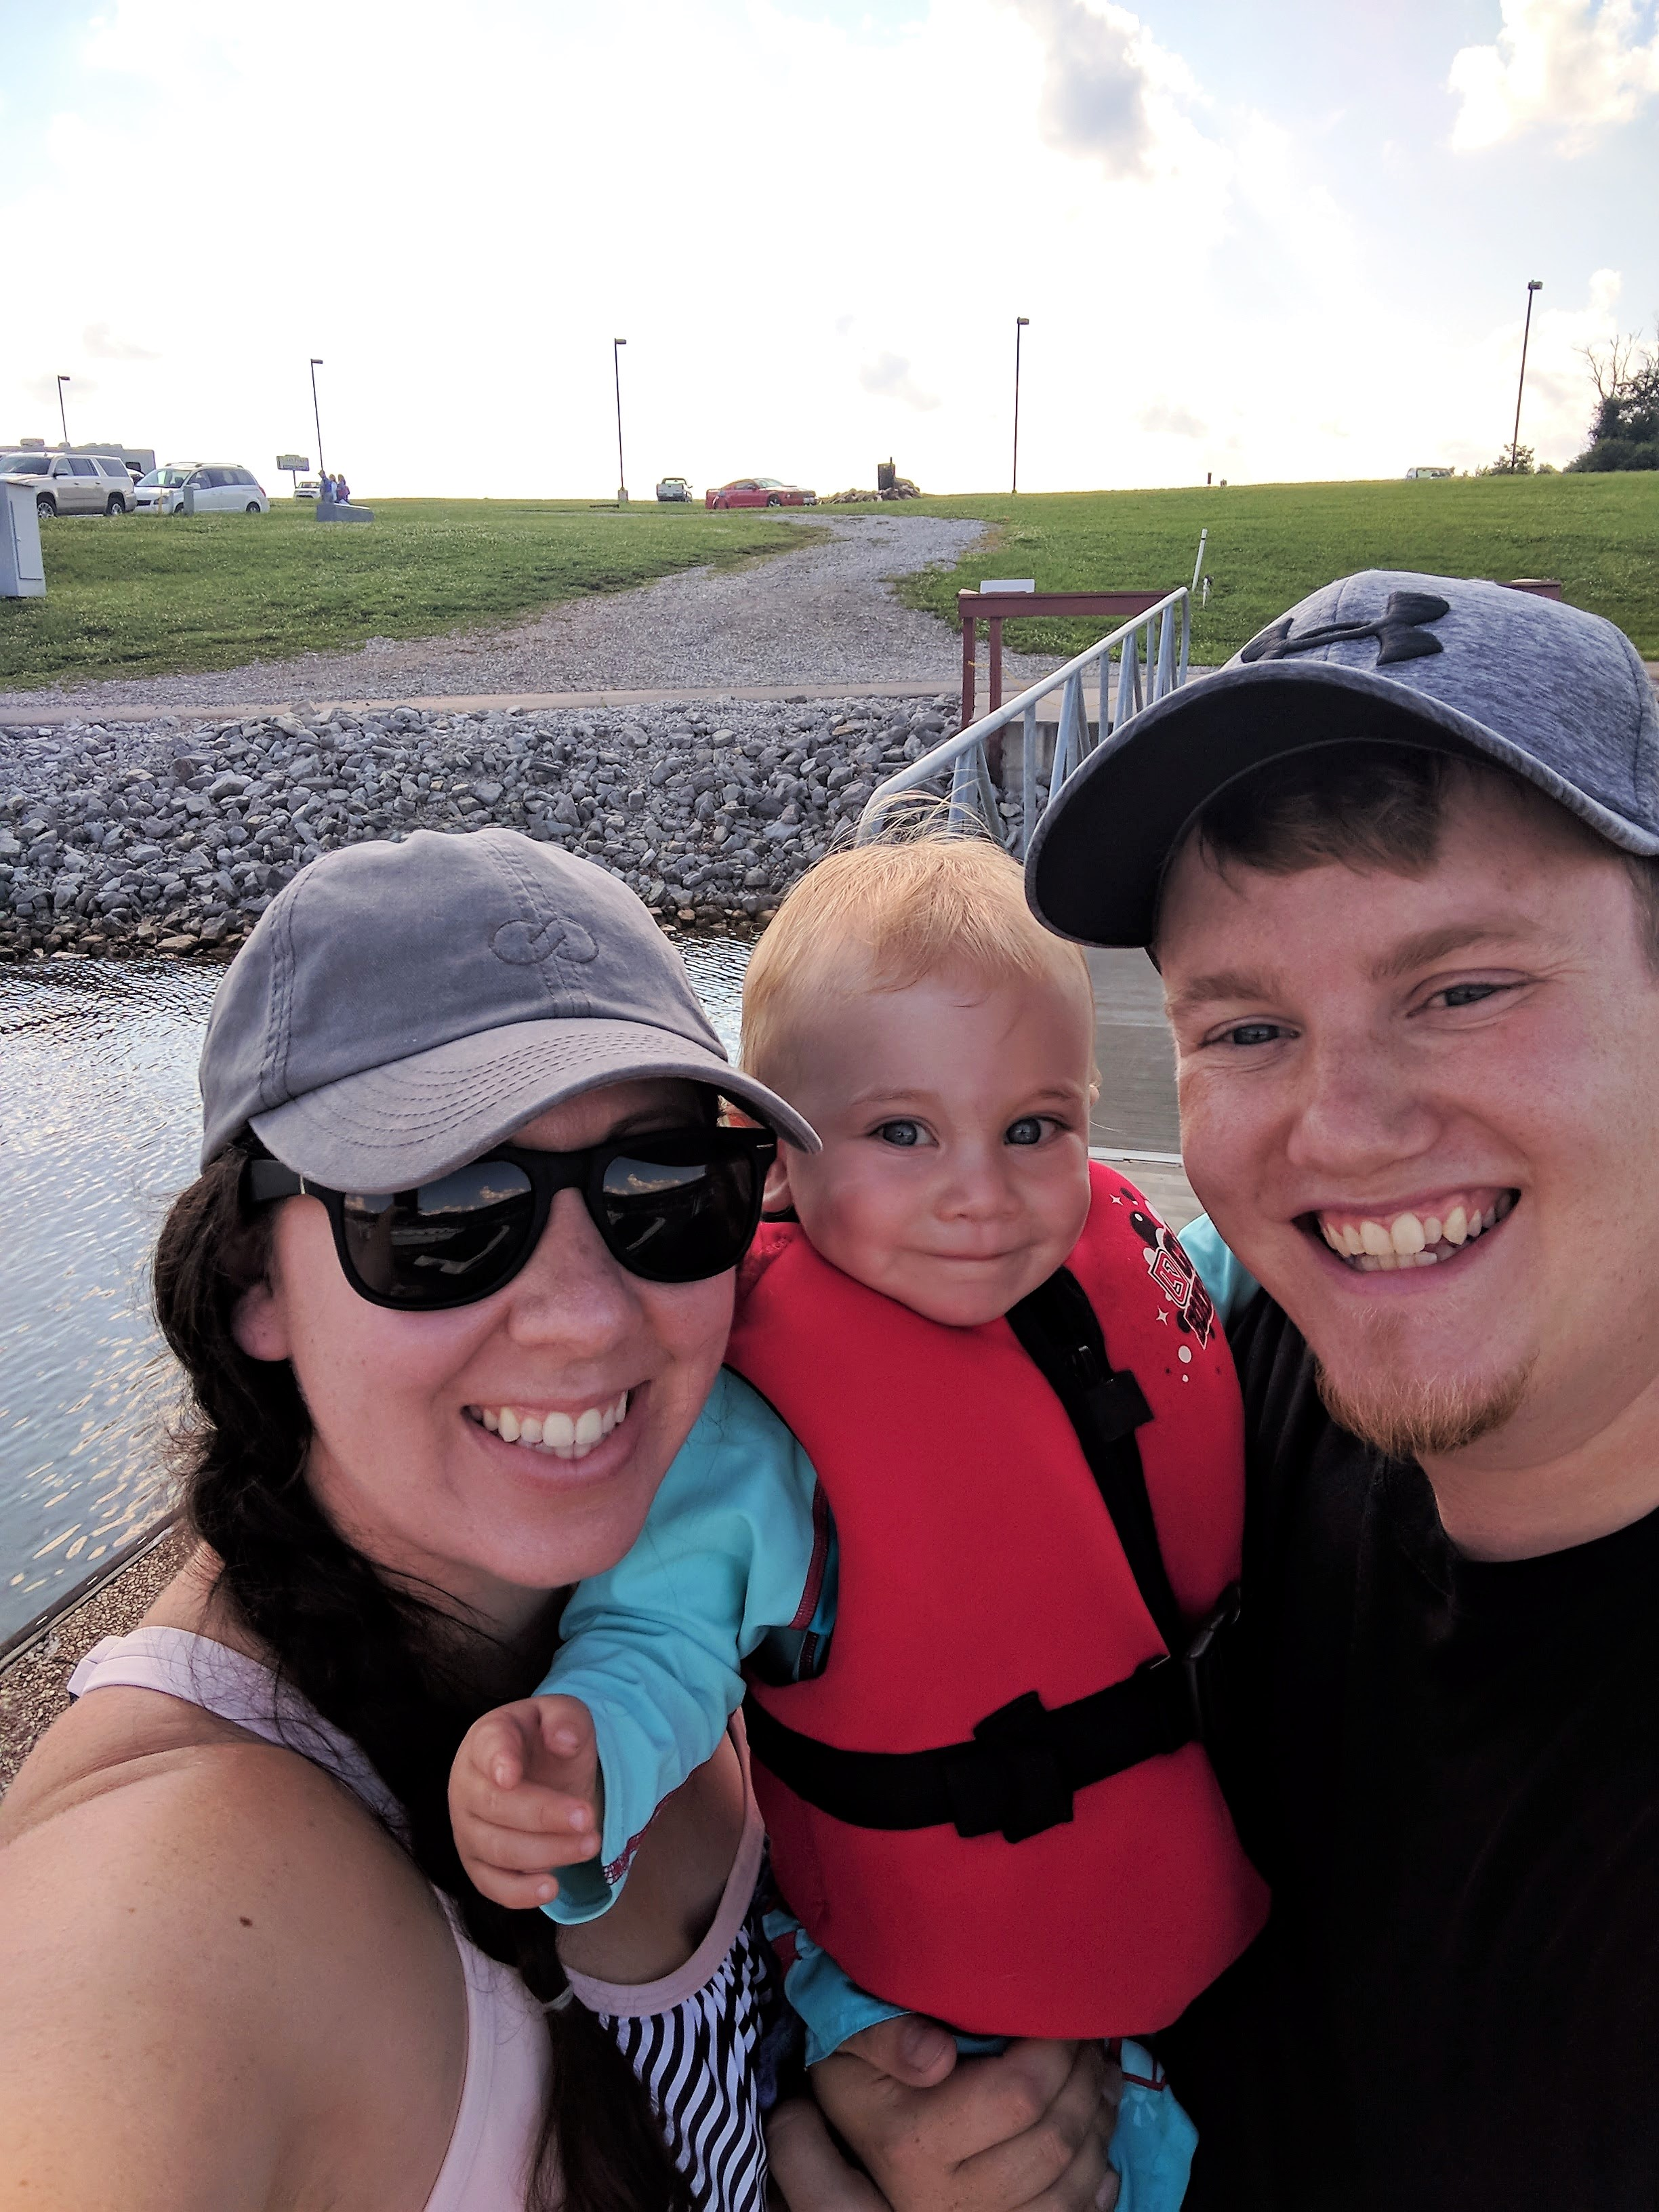 The Grand Seeley Adventure, Family Vacation, lake life, tubing, boating